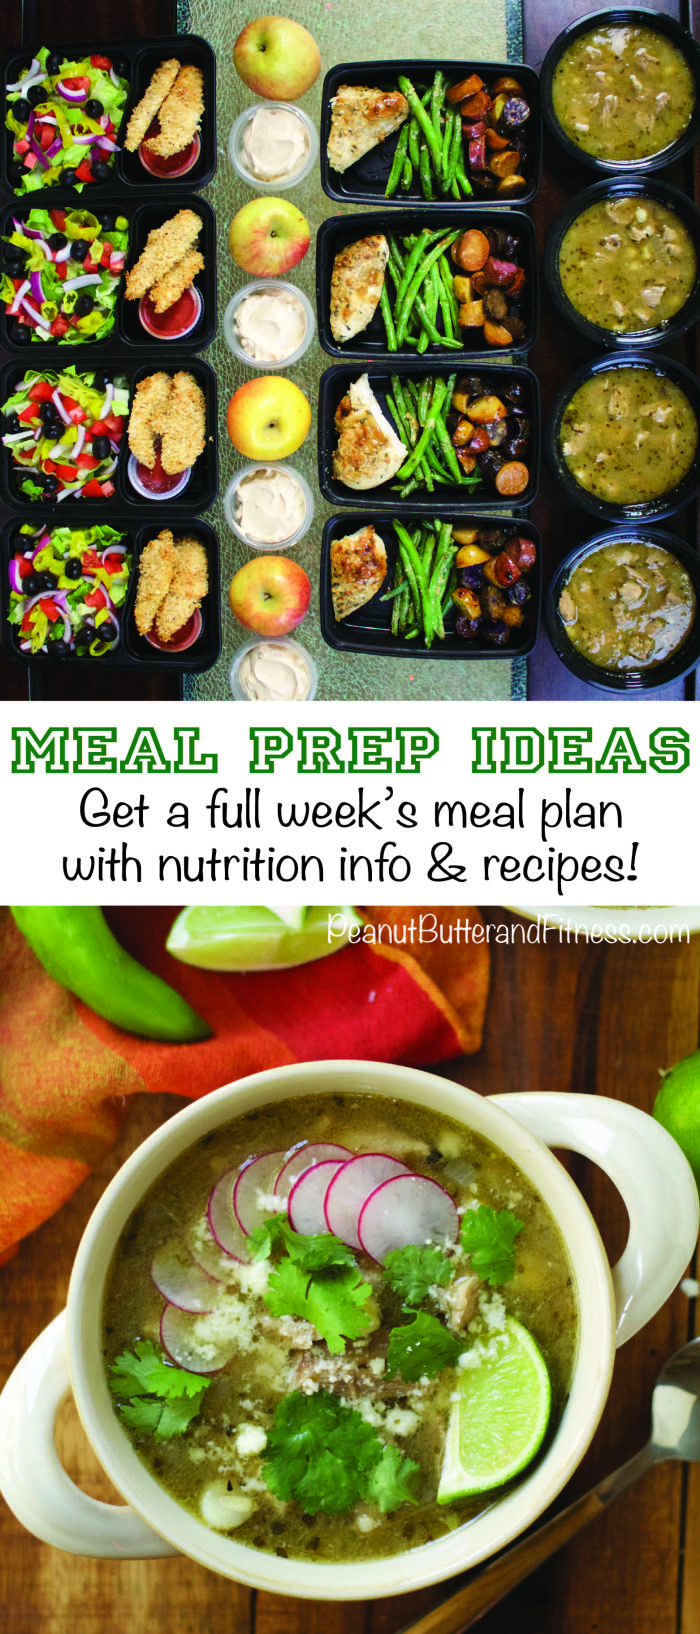 Meal Prep Ideas for the Week!  This week I've got: -> Chicken Parmesan Tenders with Olive Garden Salad -> Skillet Honey Garlic Chicken with Fingerling Potatoes and Green Beans -> Slow Cooker Posole Verde -> Snacks, including apples with PB yogurt dip  Recipes with nutrition info in the link!